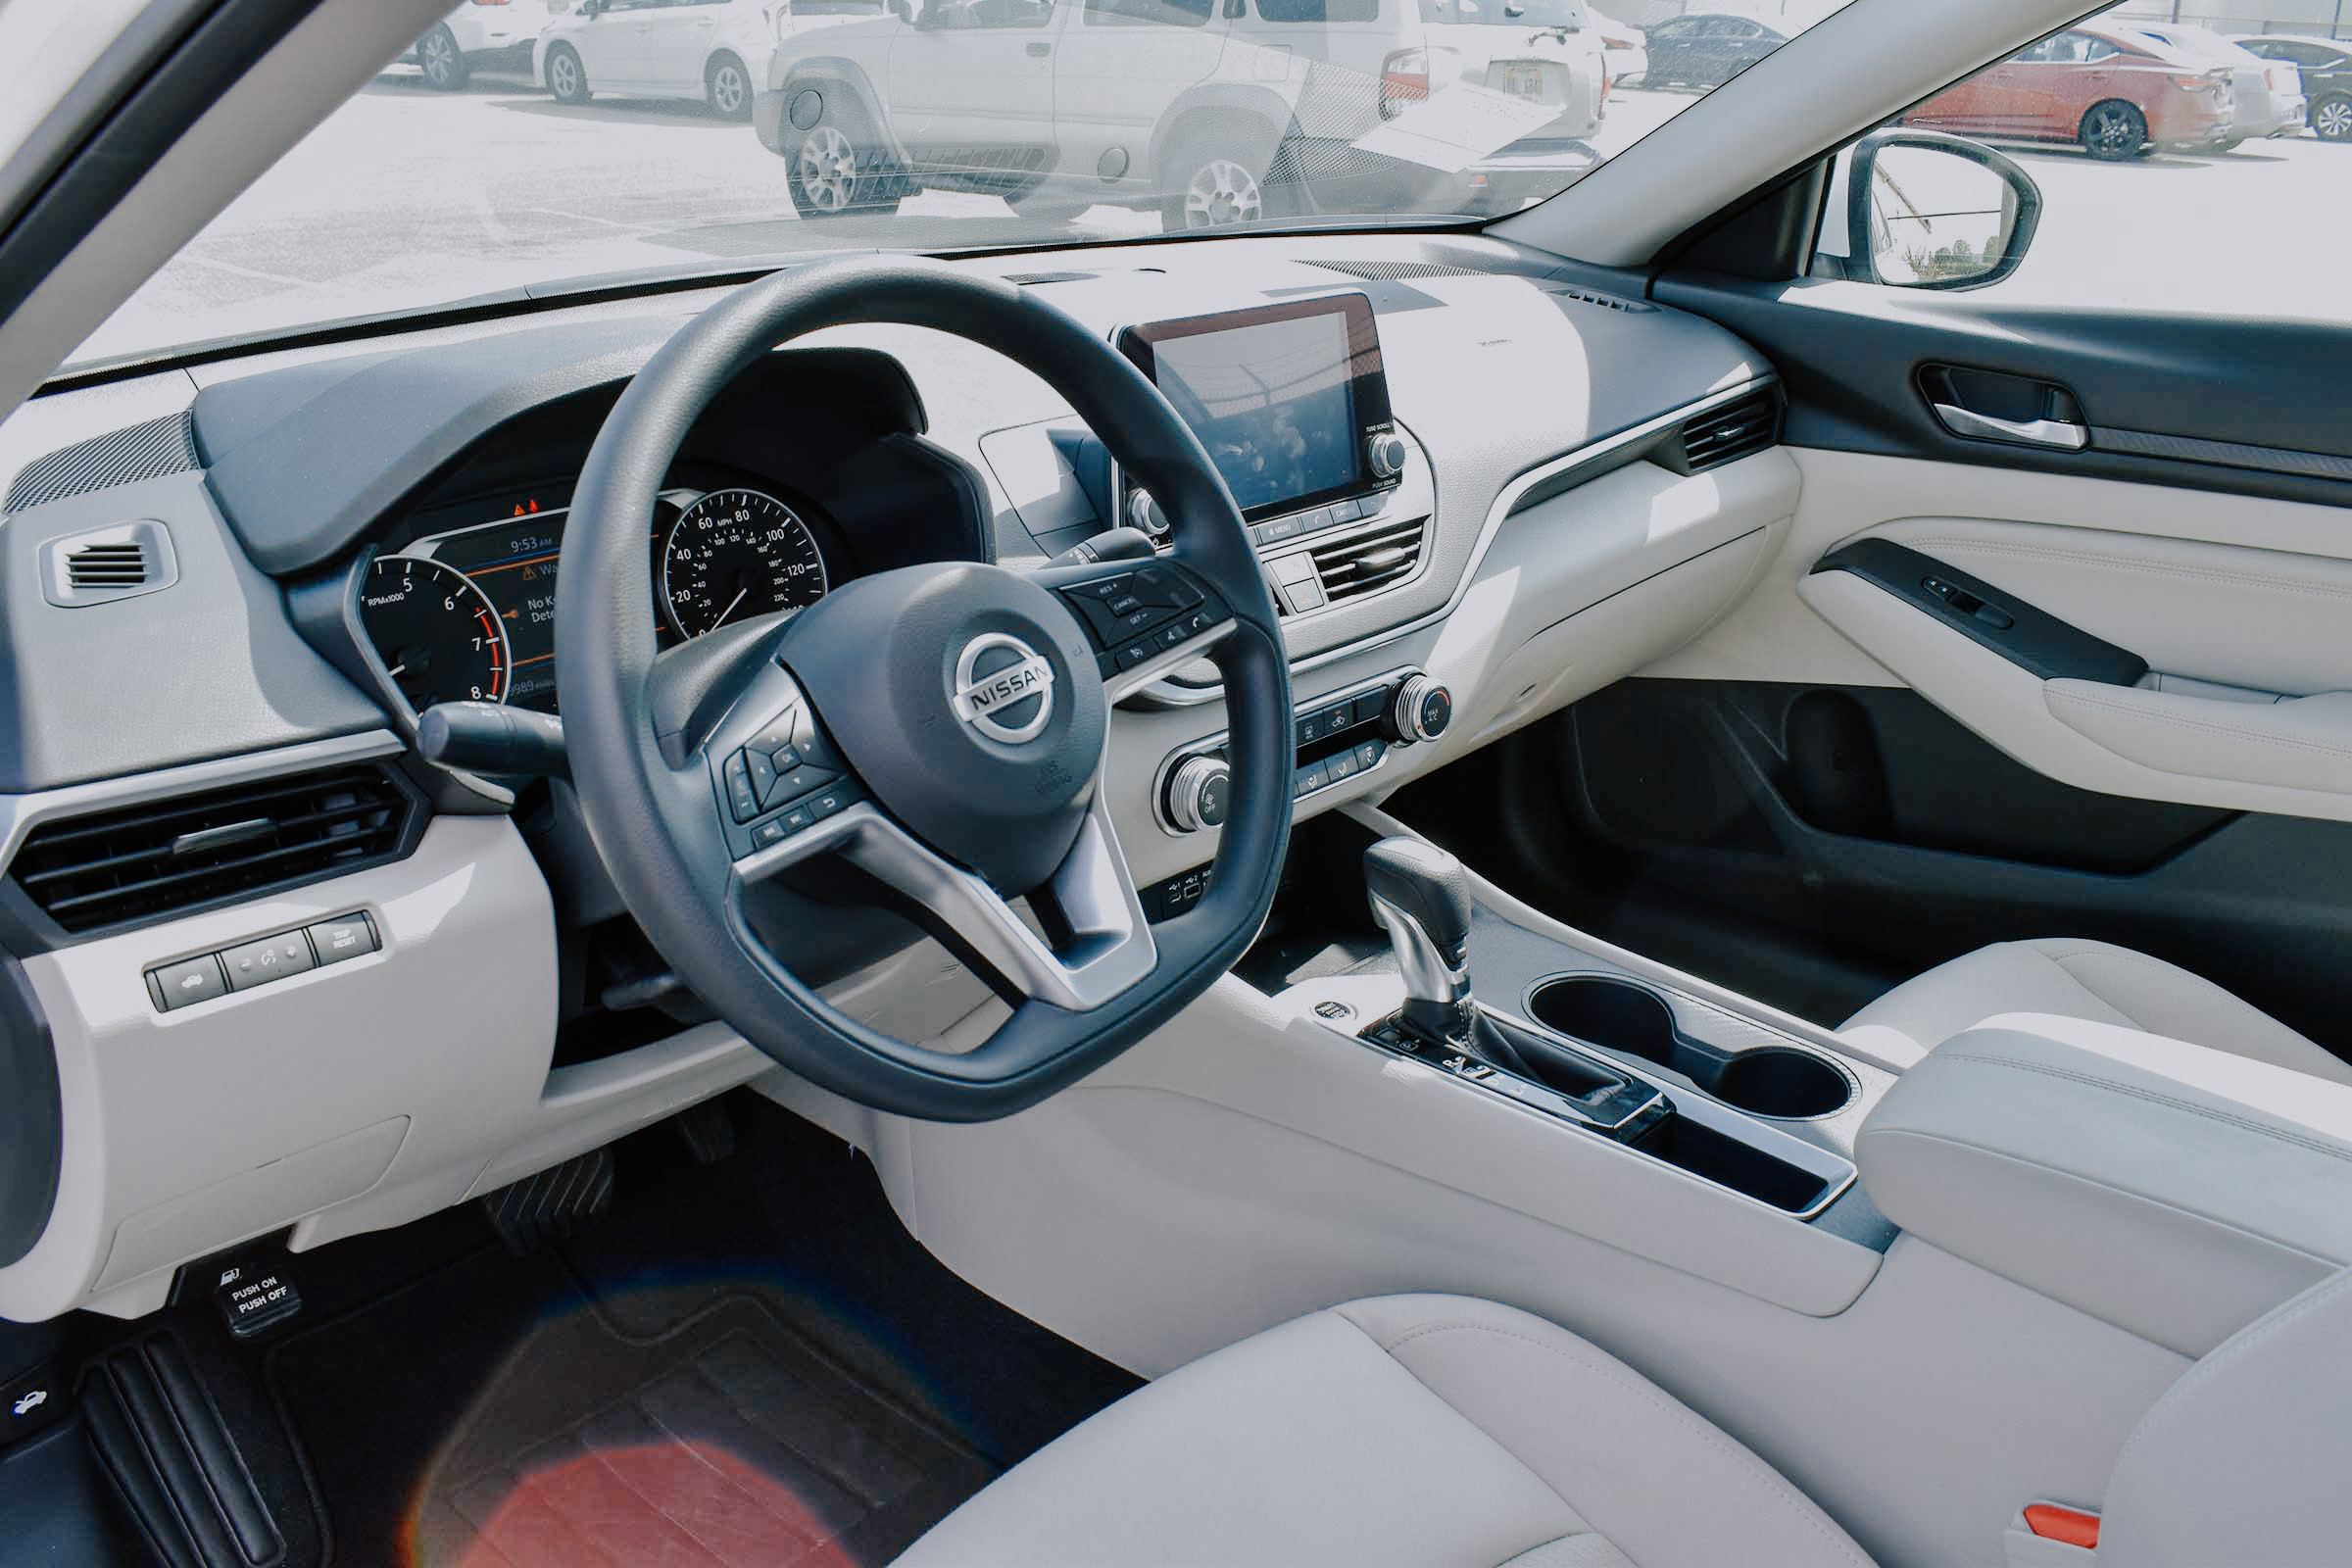 Interior view of the Nissan Maxima finished in tad leather.